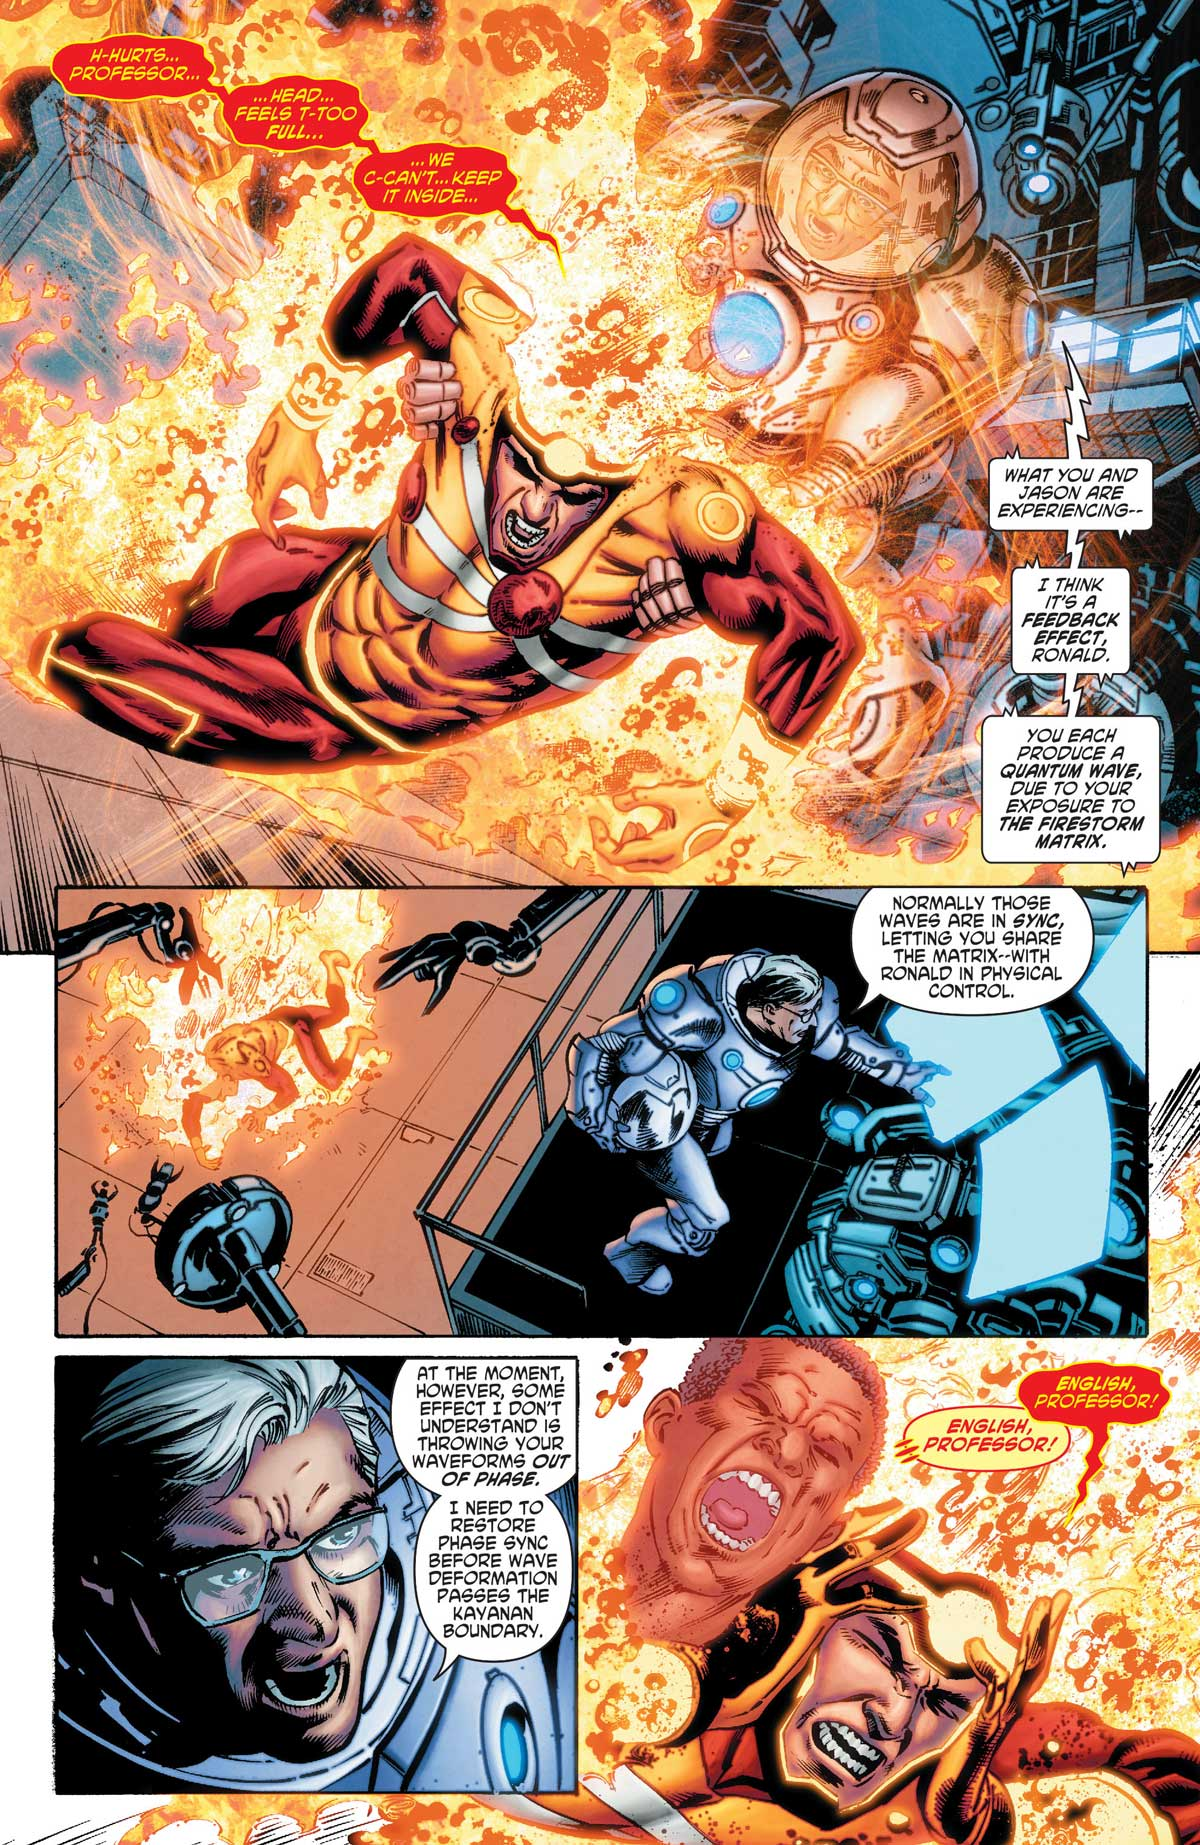 Firestorm in Legends of Tomorrow #2 by Gerry Conway, Eduardo Pansica, Rob Hunter